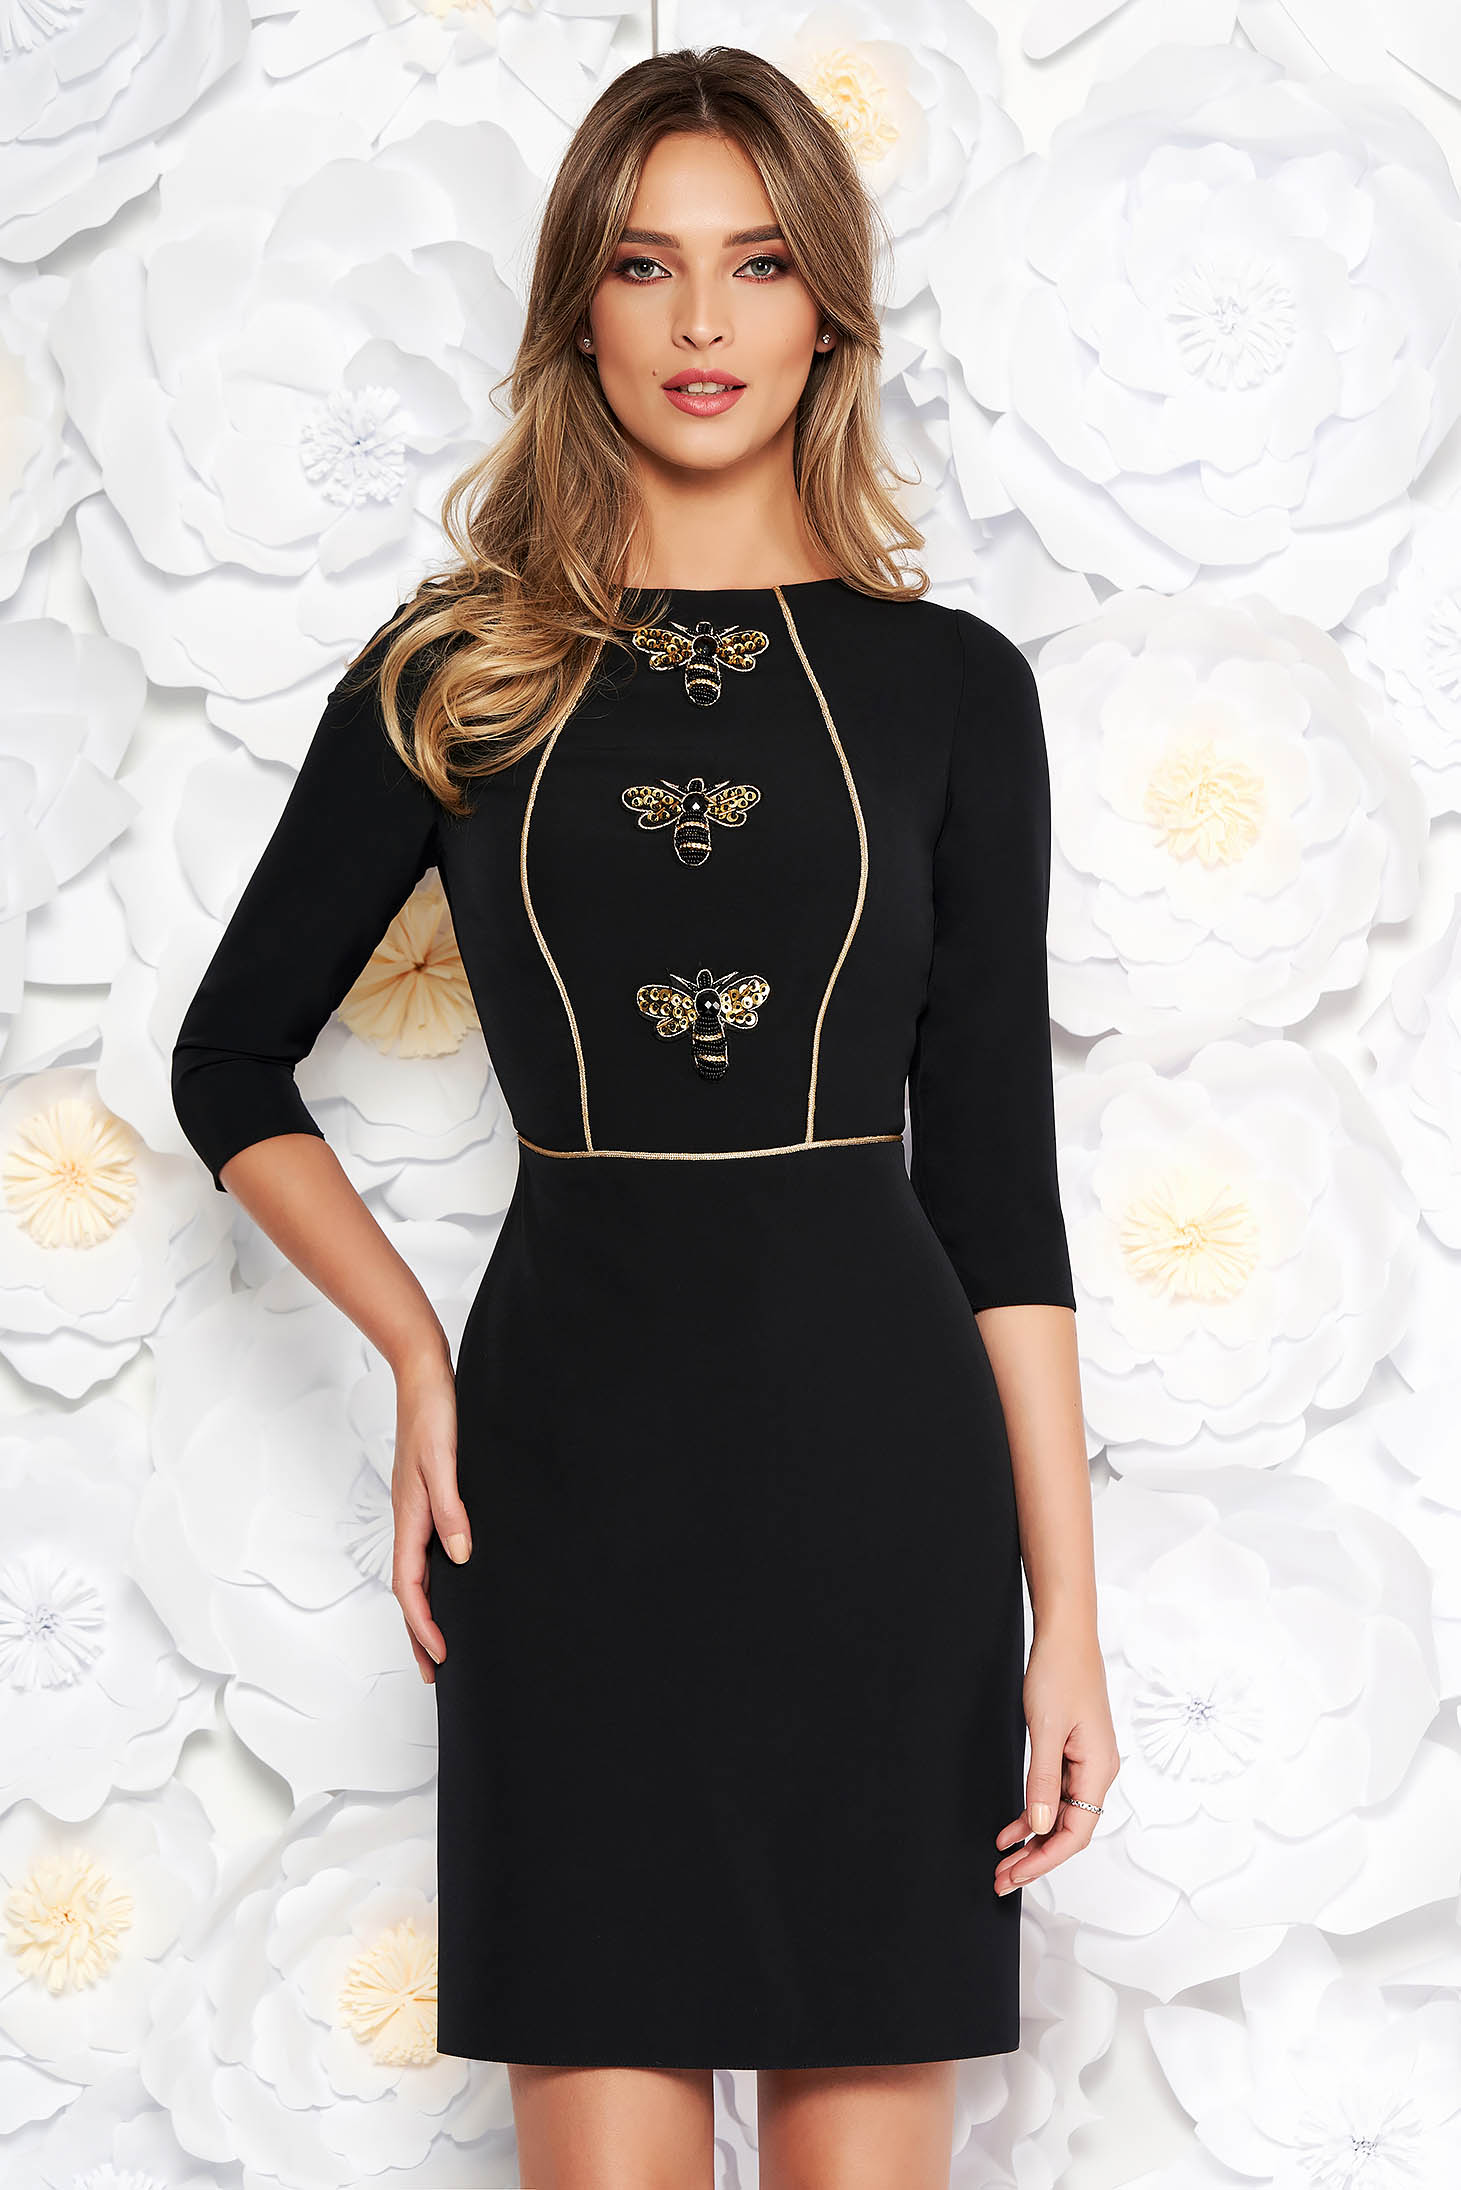 Black elegant pencil dress slightly elastic fabric with inside lining with sequin embellished and embroidery details